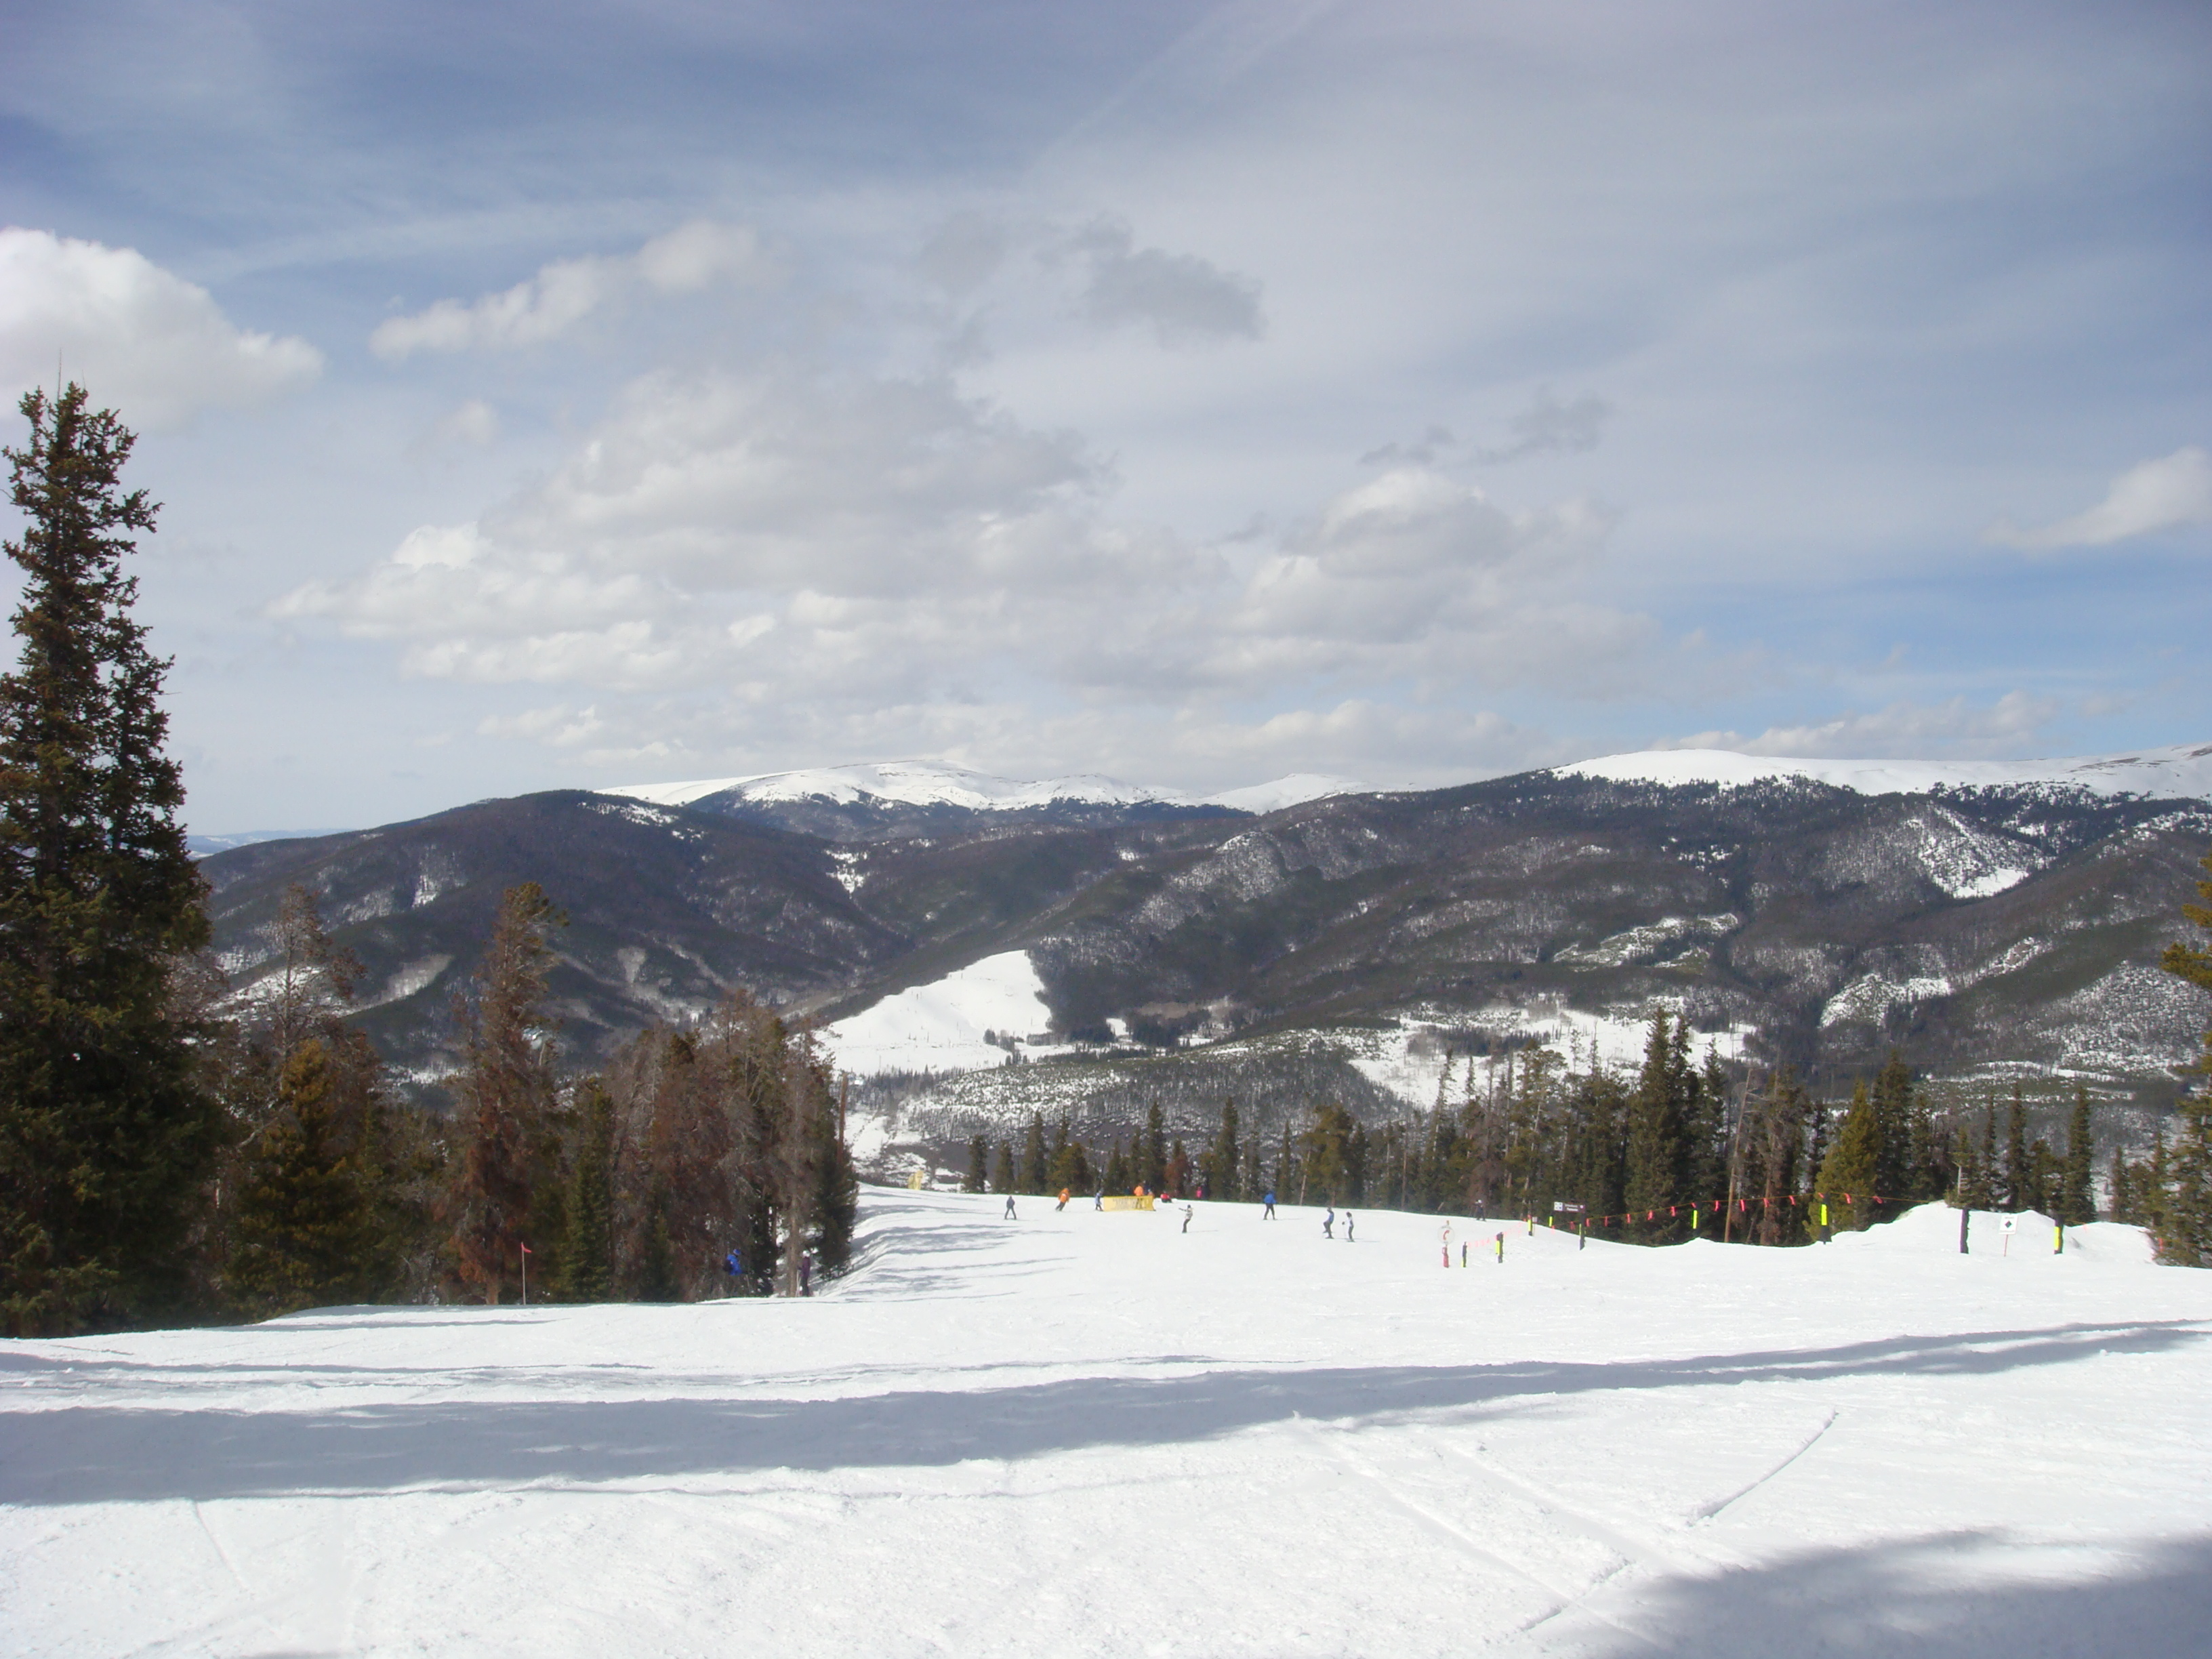 Amazing view at Keystone!